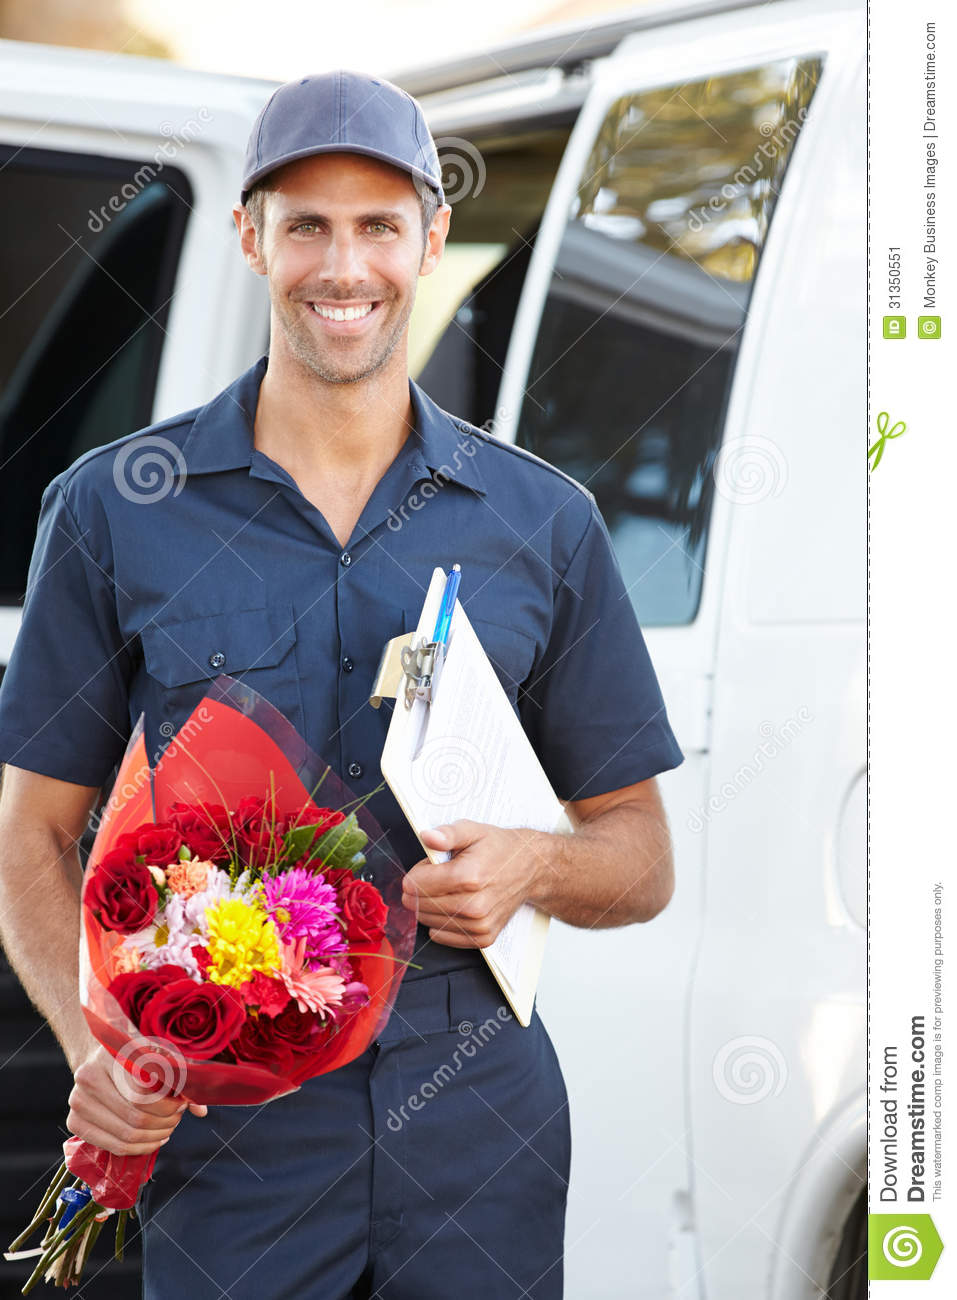 Portrait Of Delivery Driver With Flowers Stock Image - Image: 31350551